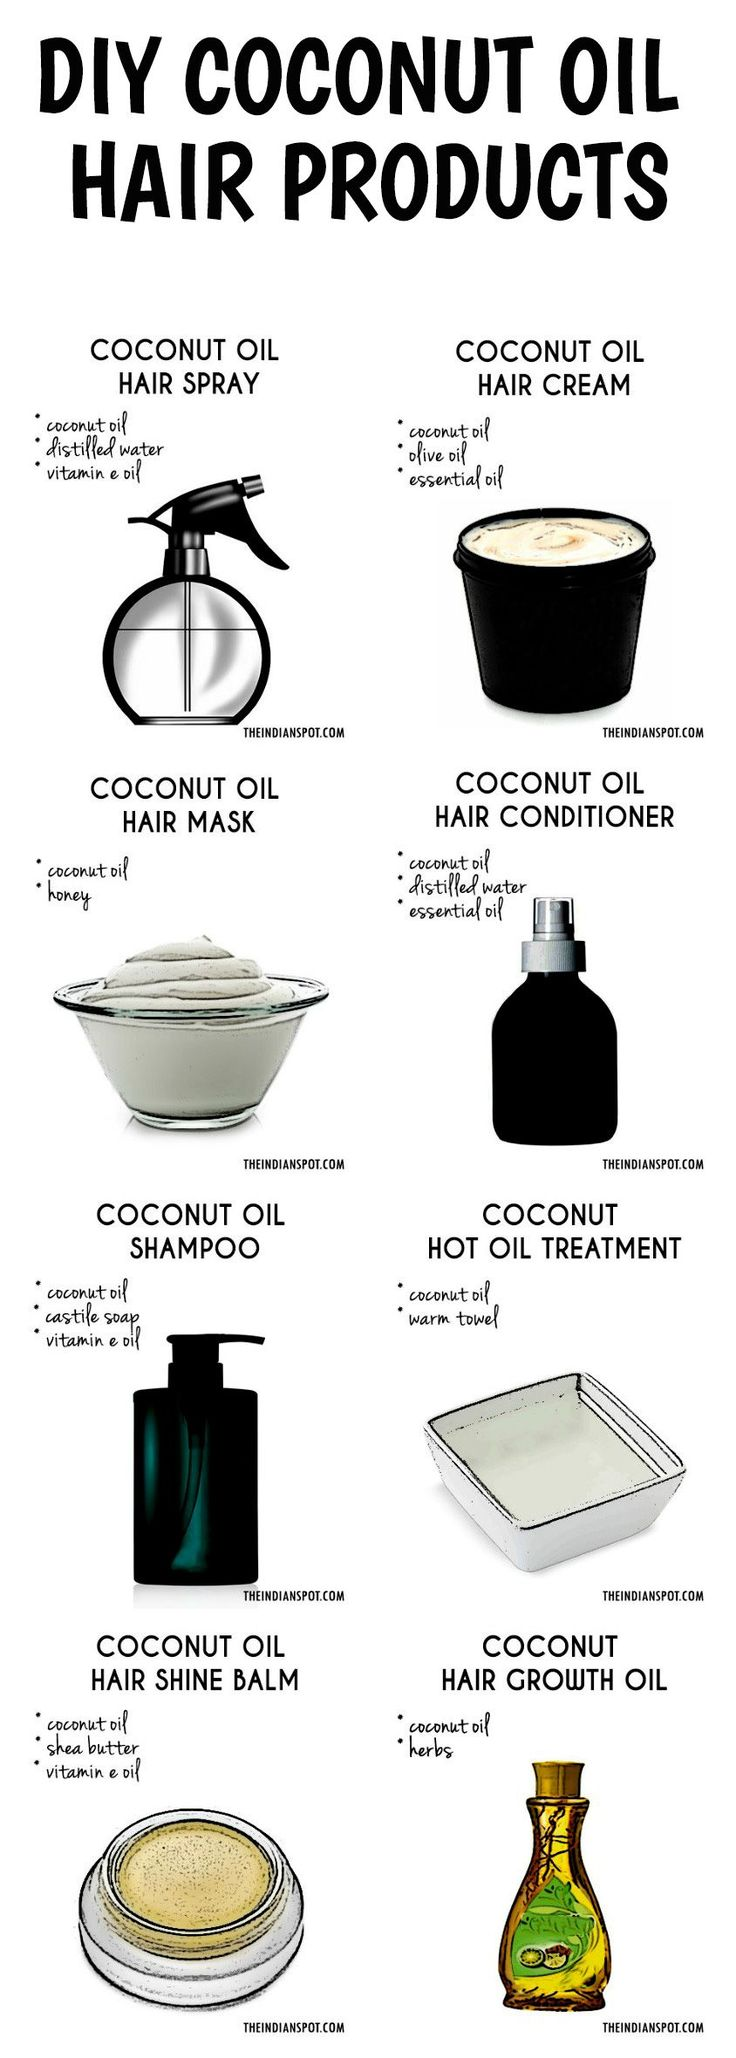 styling hair with coconut oil best 25 hacks ideas on tips 9461 | 0a8767907c9511d027cdfb98643d9e78 black natural hairstyles natural curly hair styles